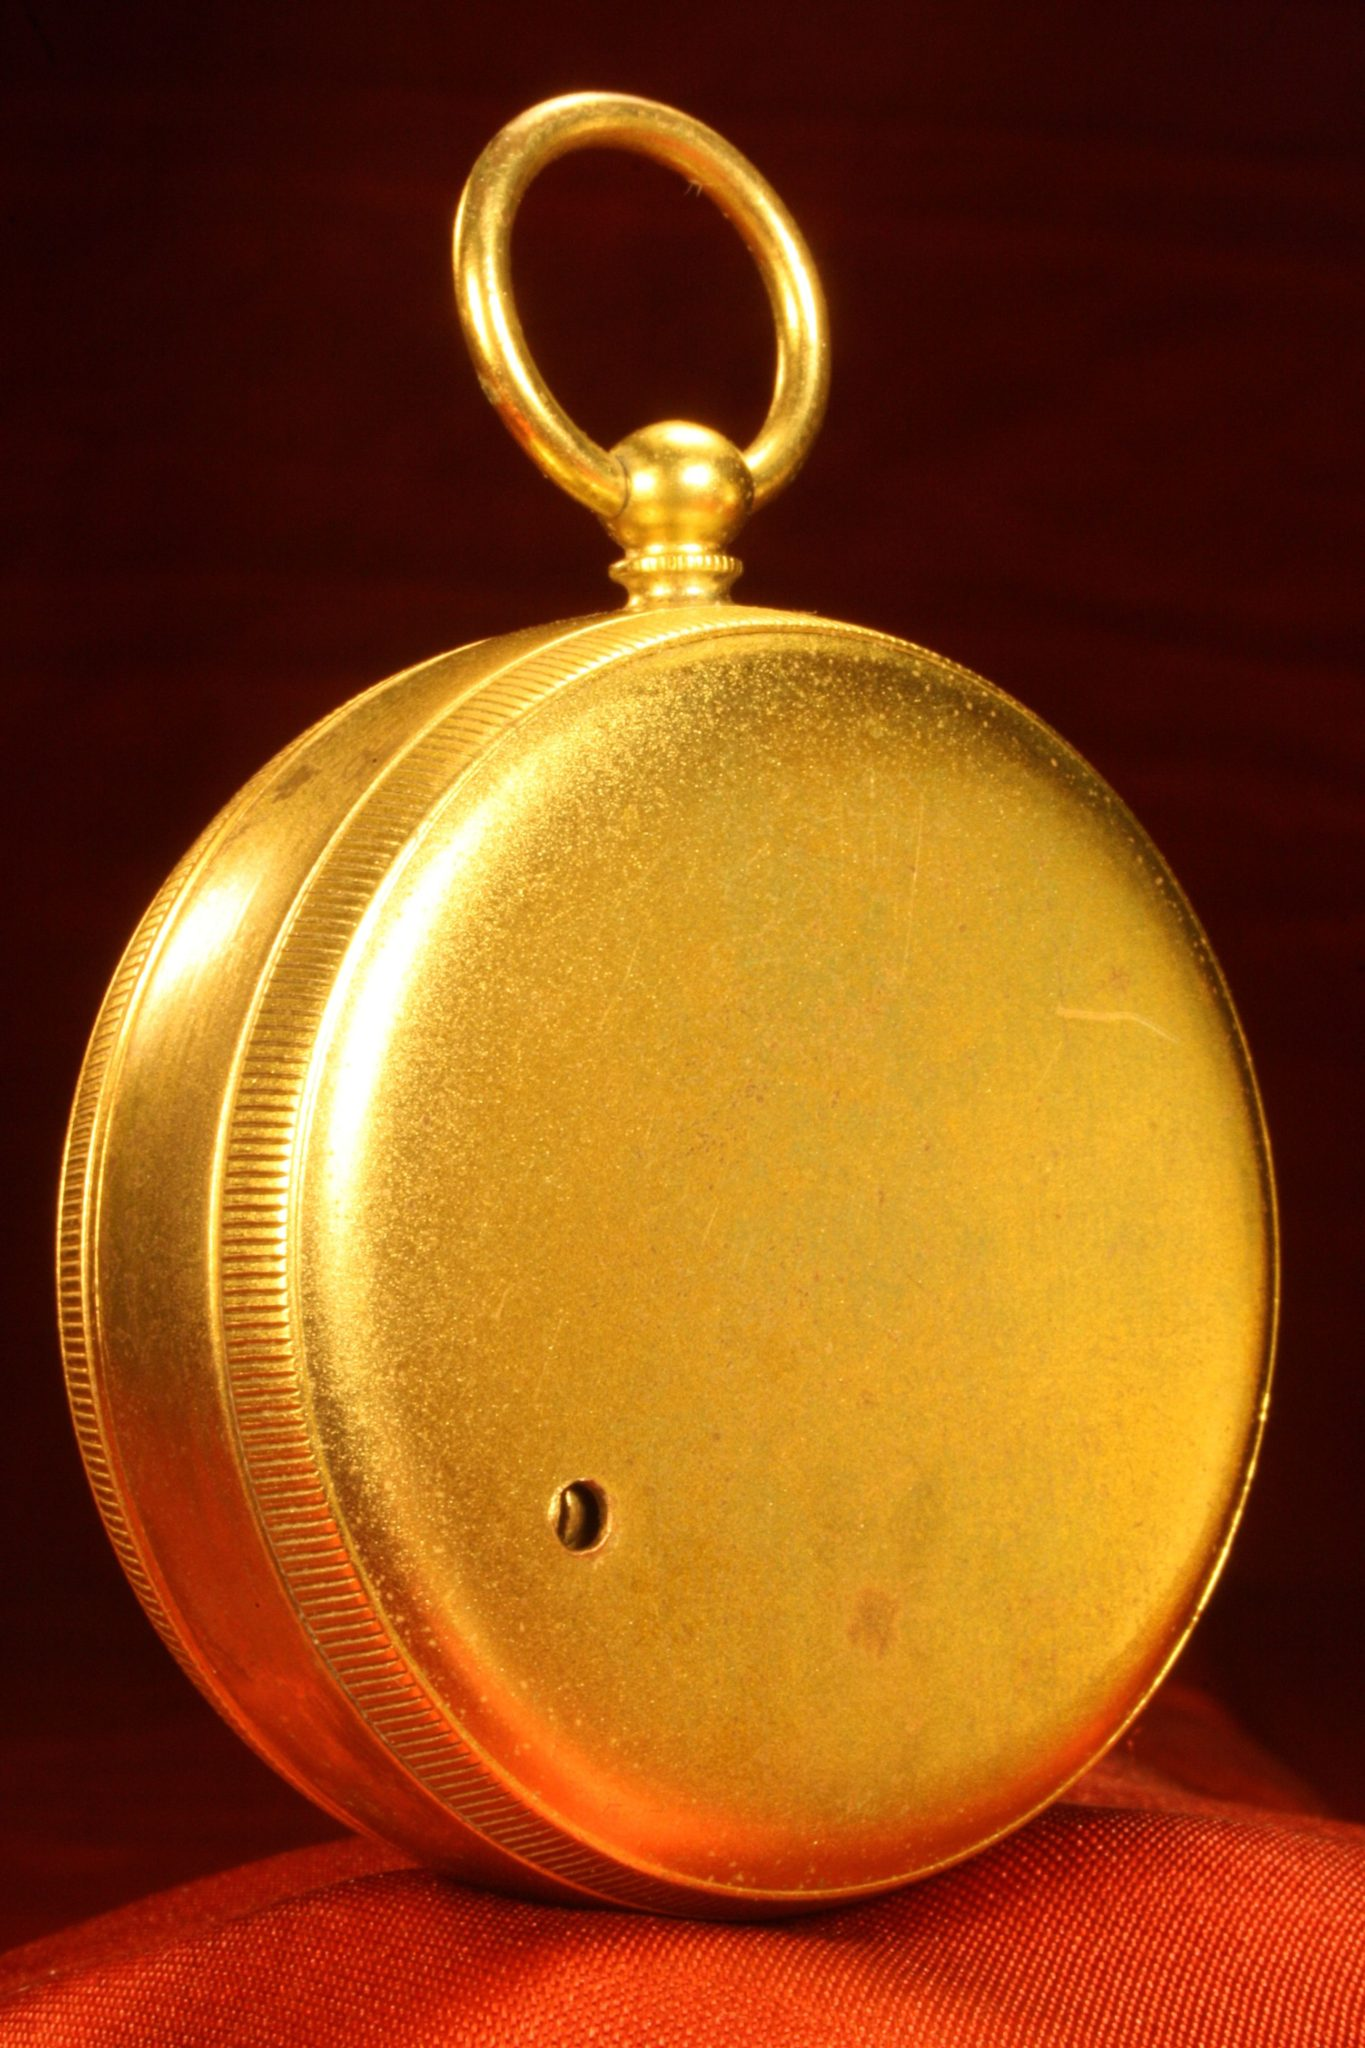 Image of Dollond Pocket Barometer